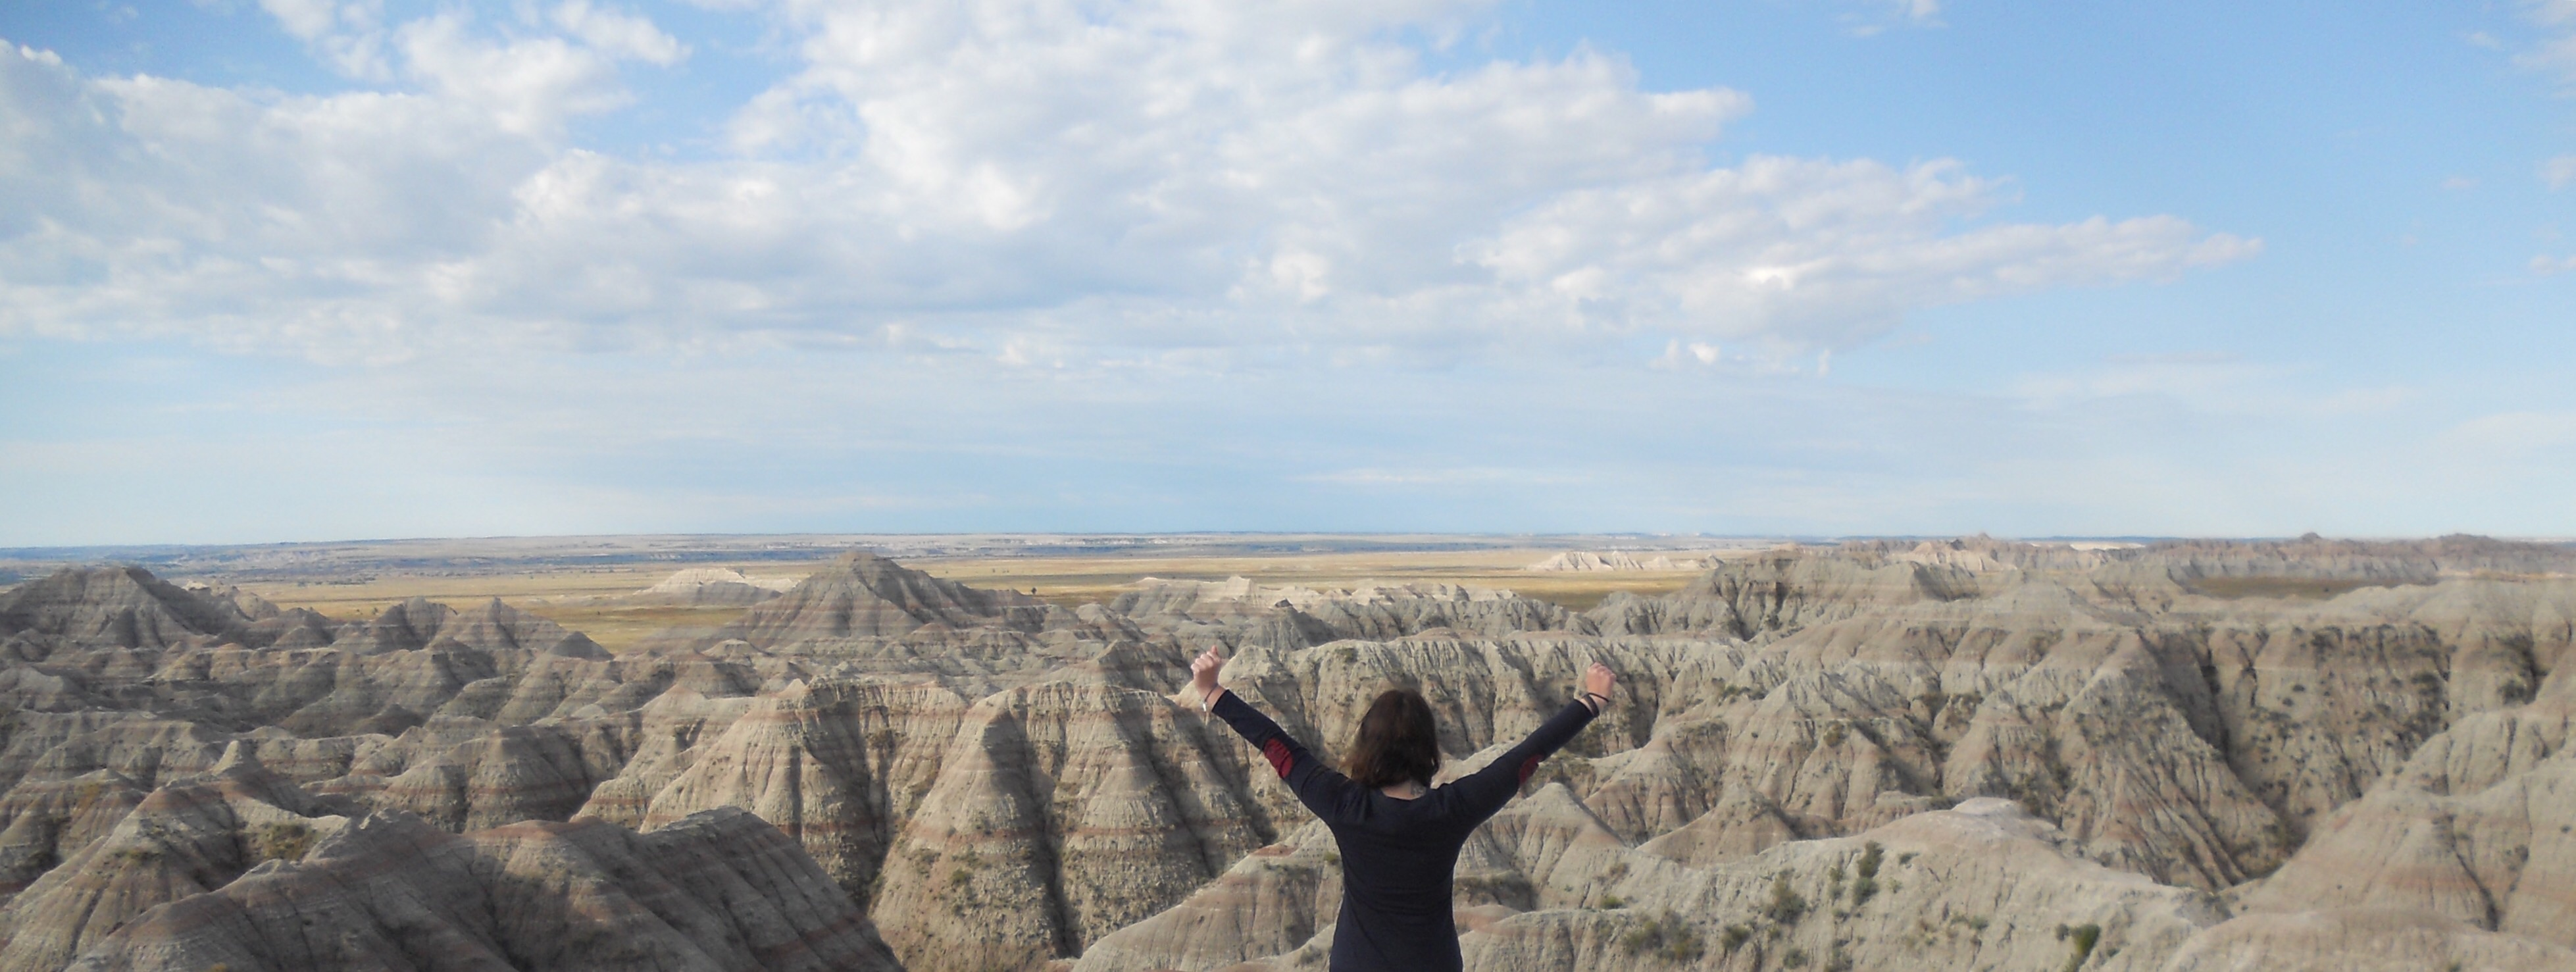 American Road Trip - Badlands